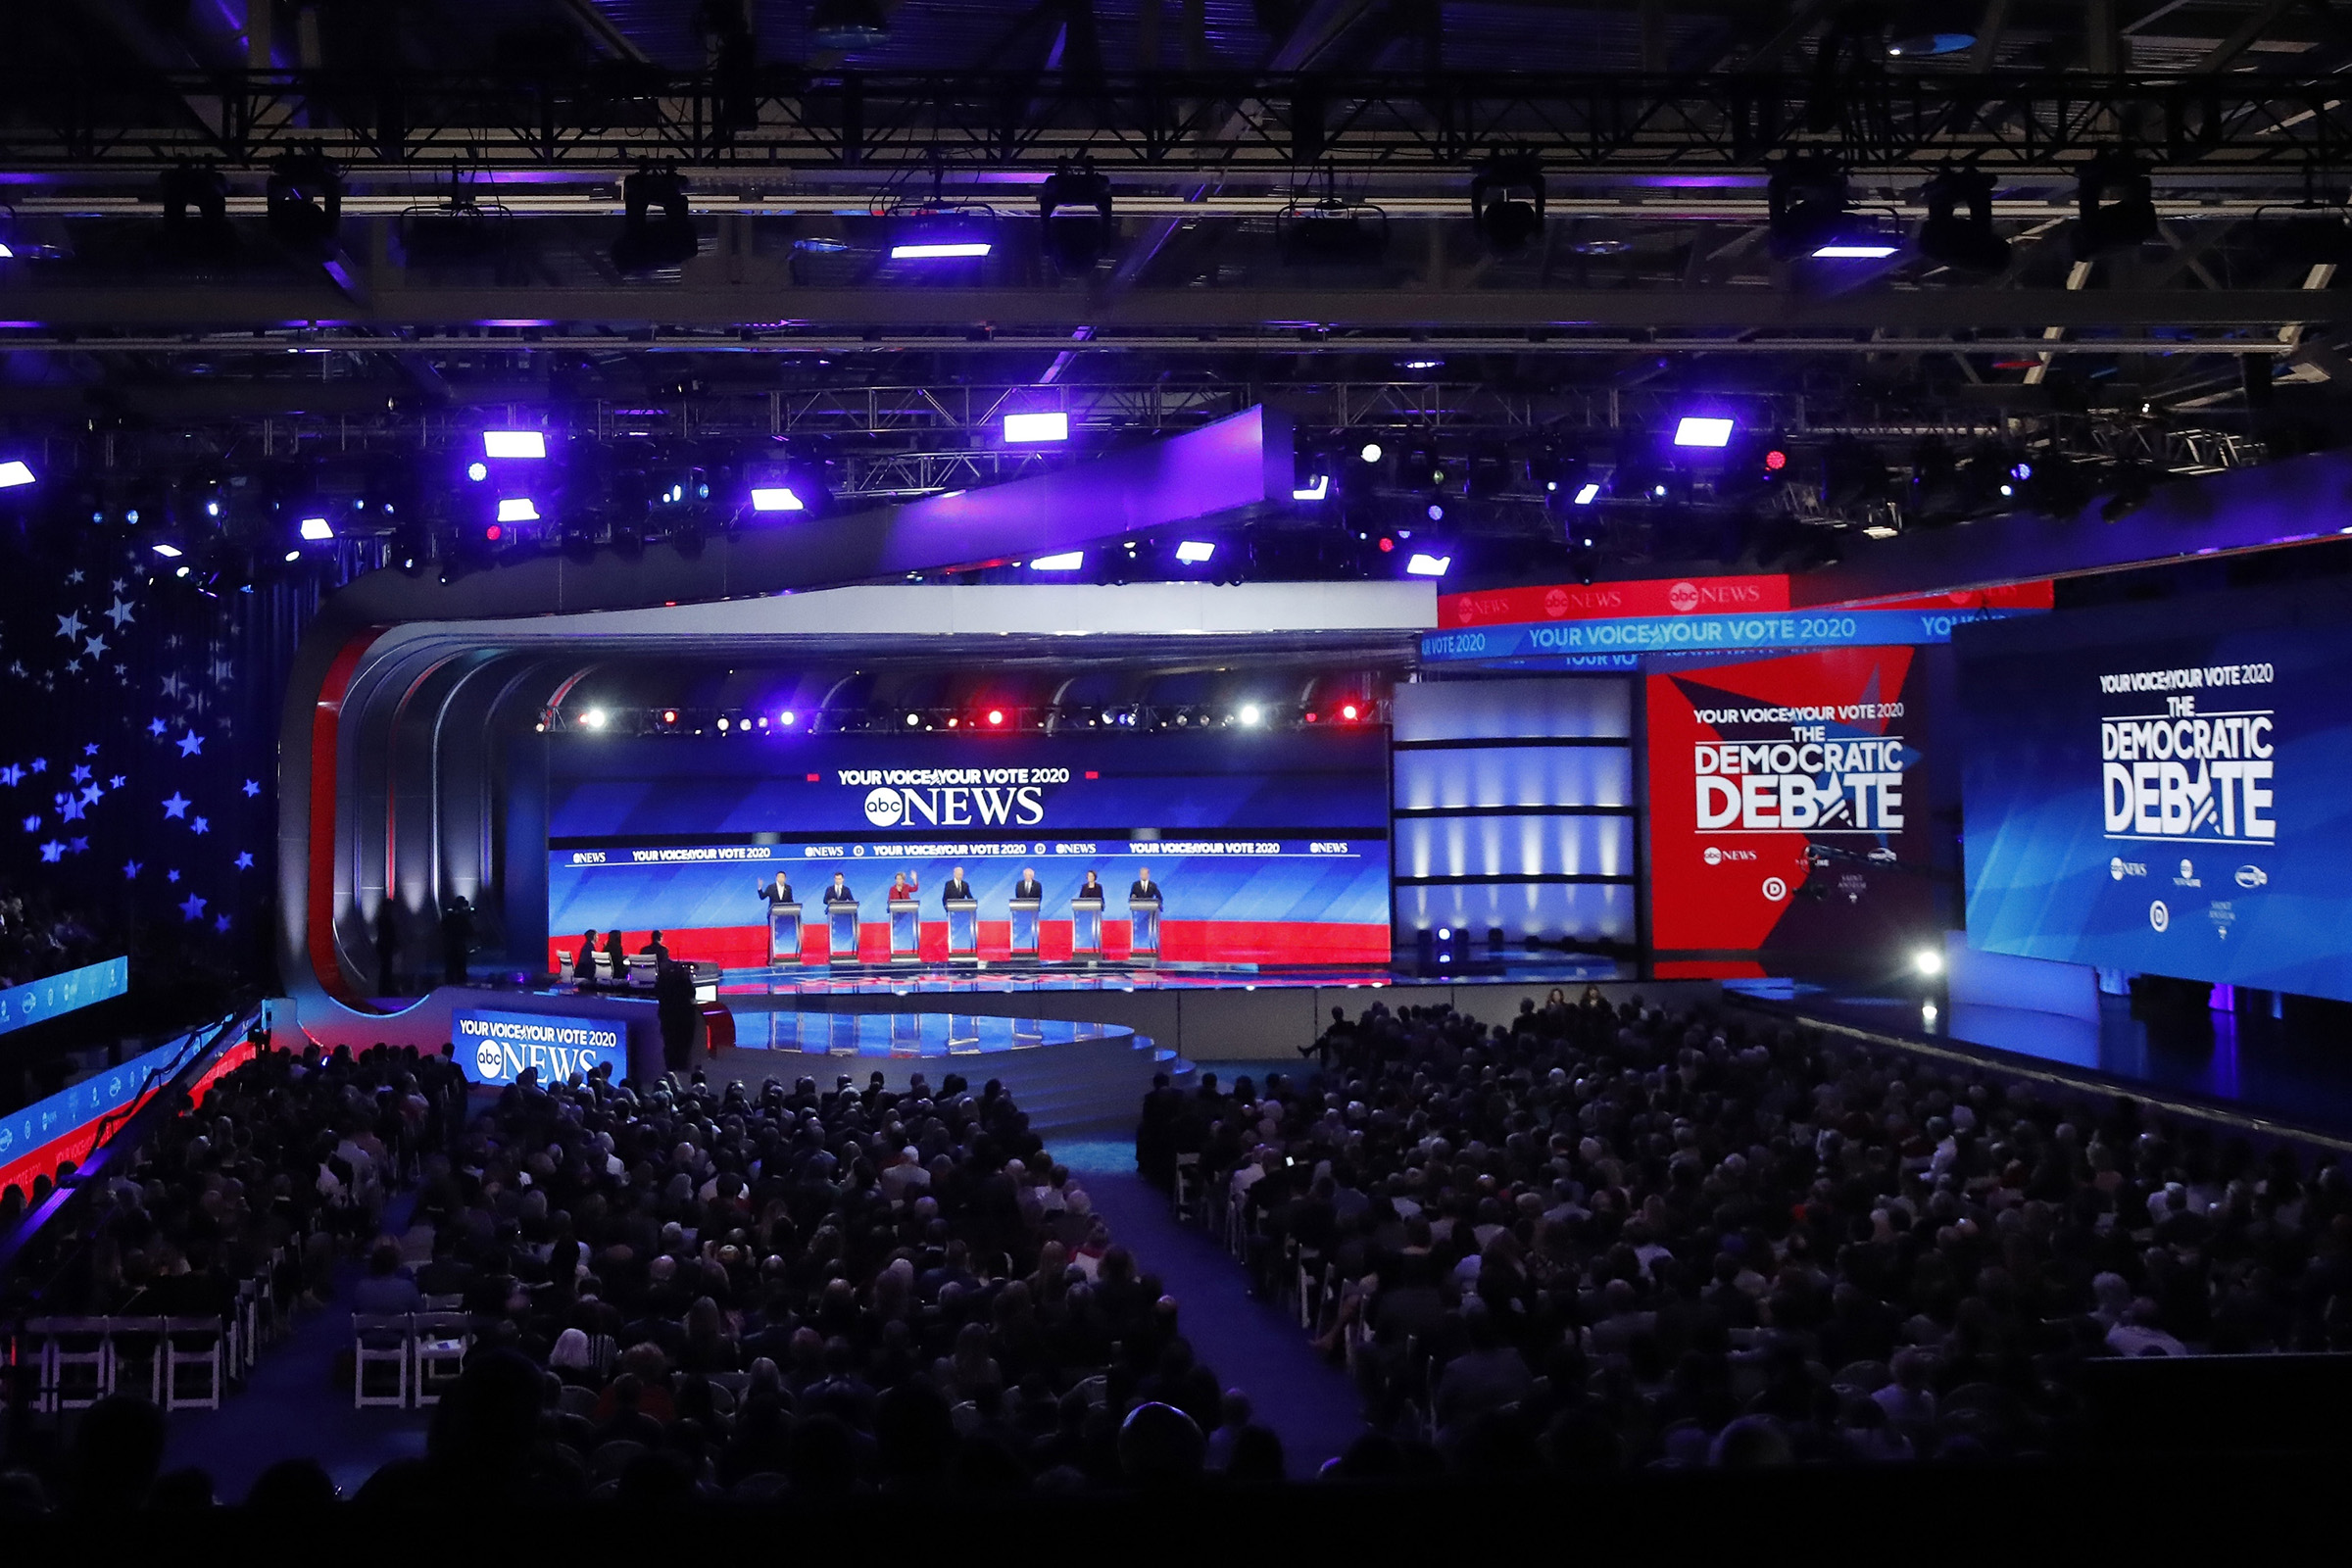 Democratic presidential candidates entrepreneur Andrew Yang, former South Bend Mayor Pete Buttigieg, Sen. Bernie Sanders, former Vice President Joe Biden, Sen. Elizabeth Warren, Sen. Amy Klobuchar, and businessman Tom Steyer participate in a Democratic presidential primary debate in Manchester, N.H. on Feb. 7, 2020.